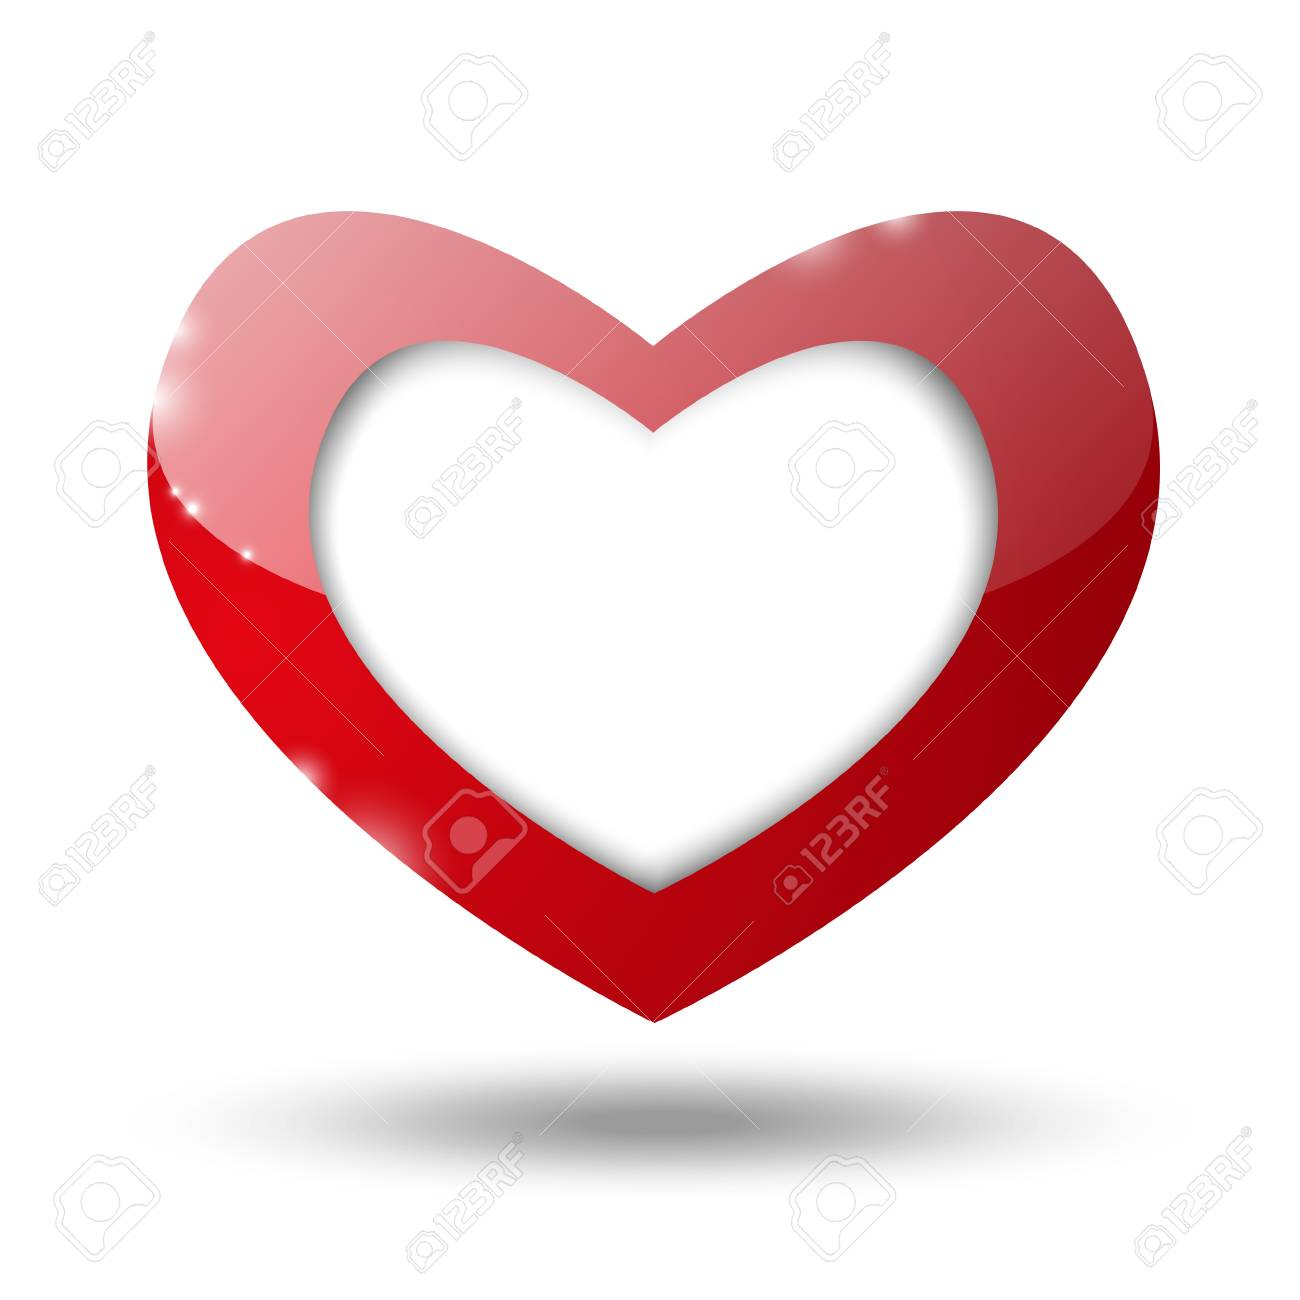 Valentine heart with place for text Stock Photo - 16892883